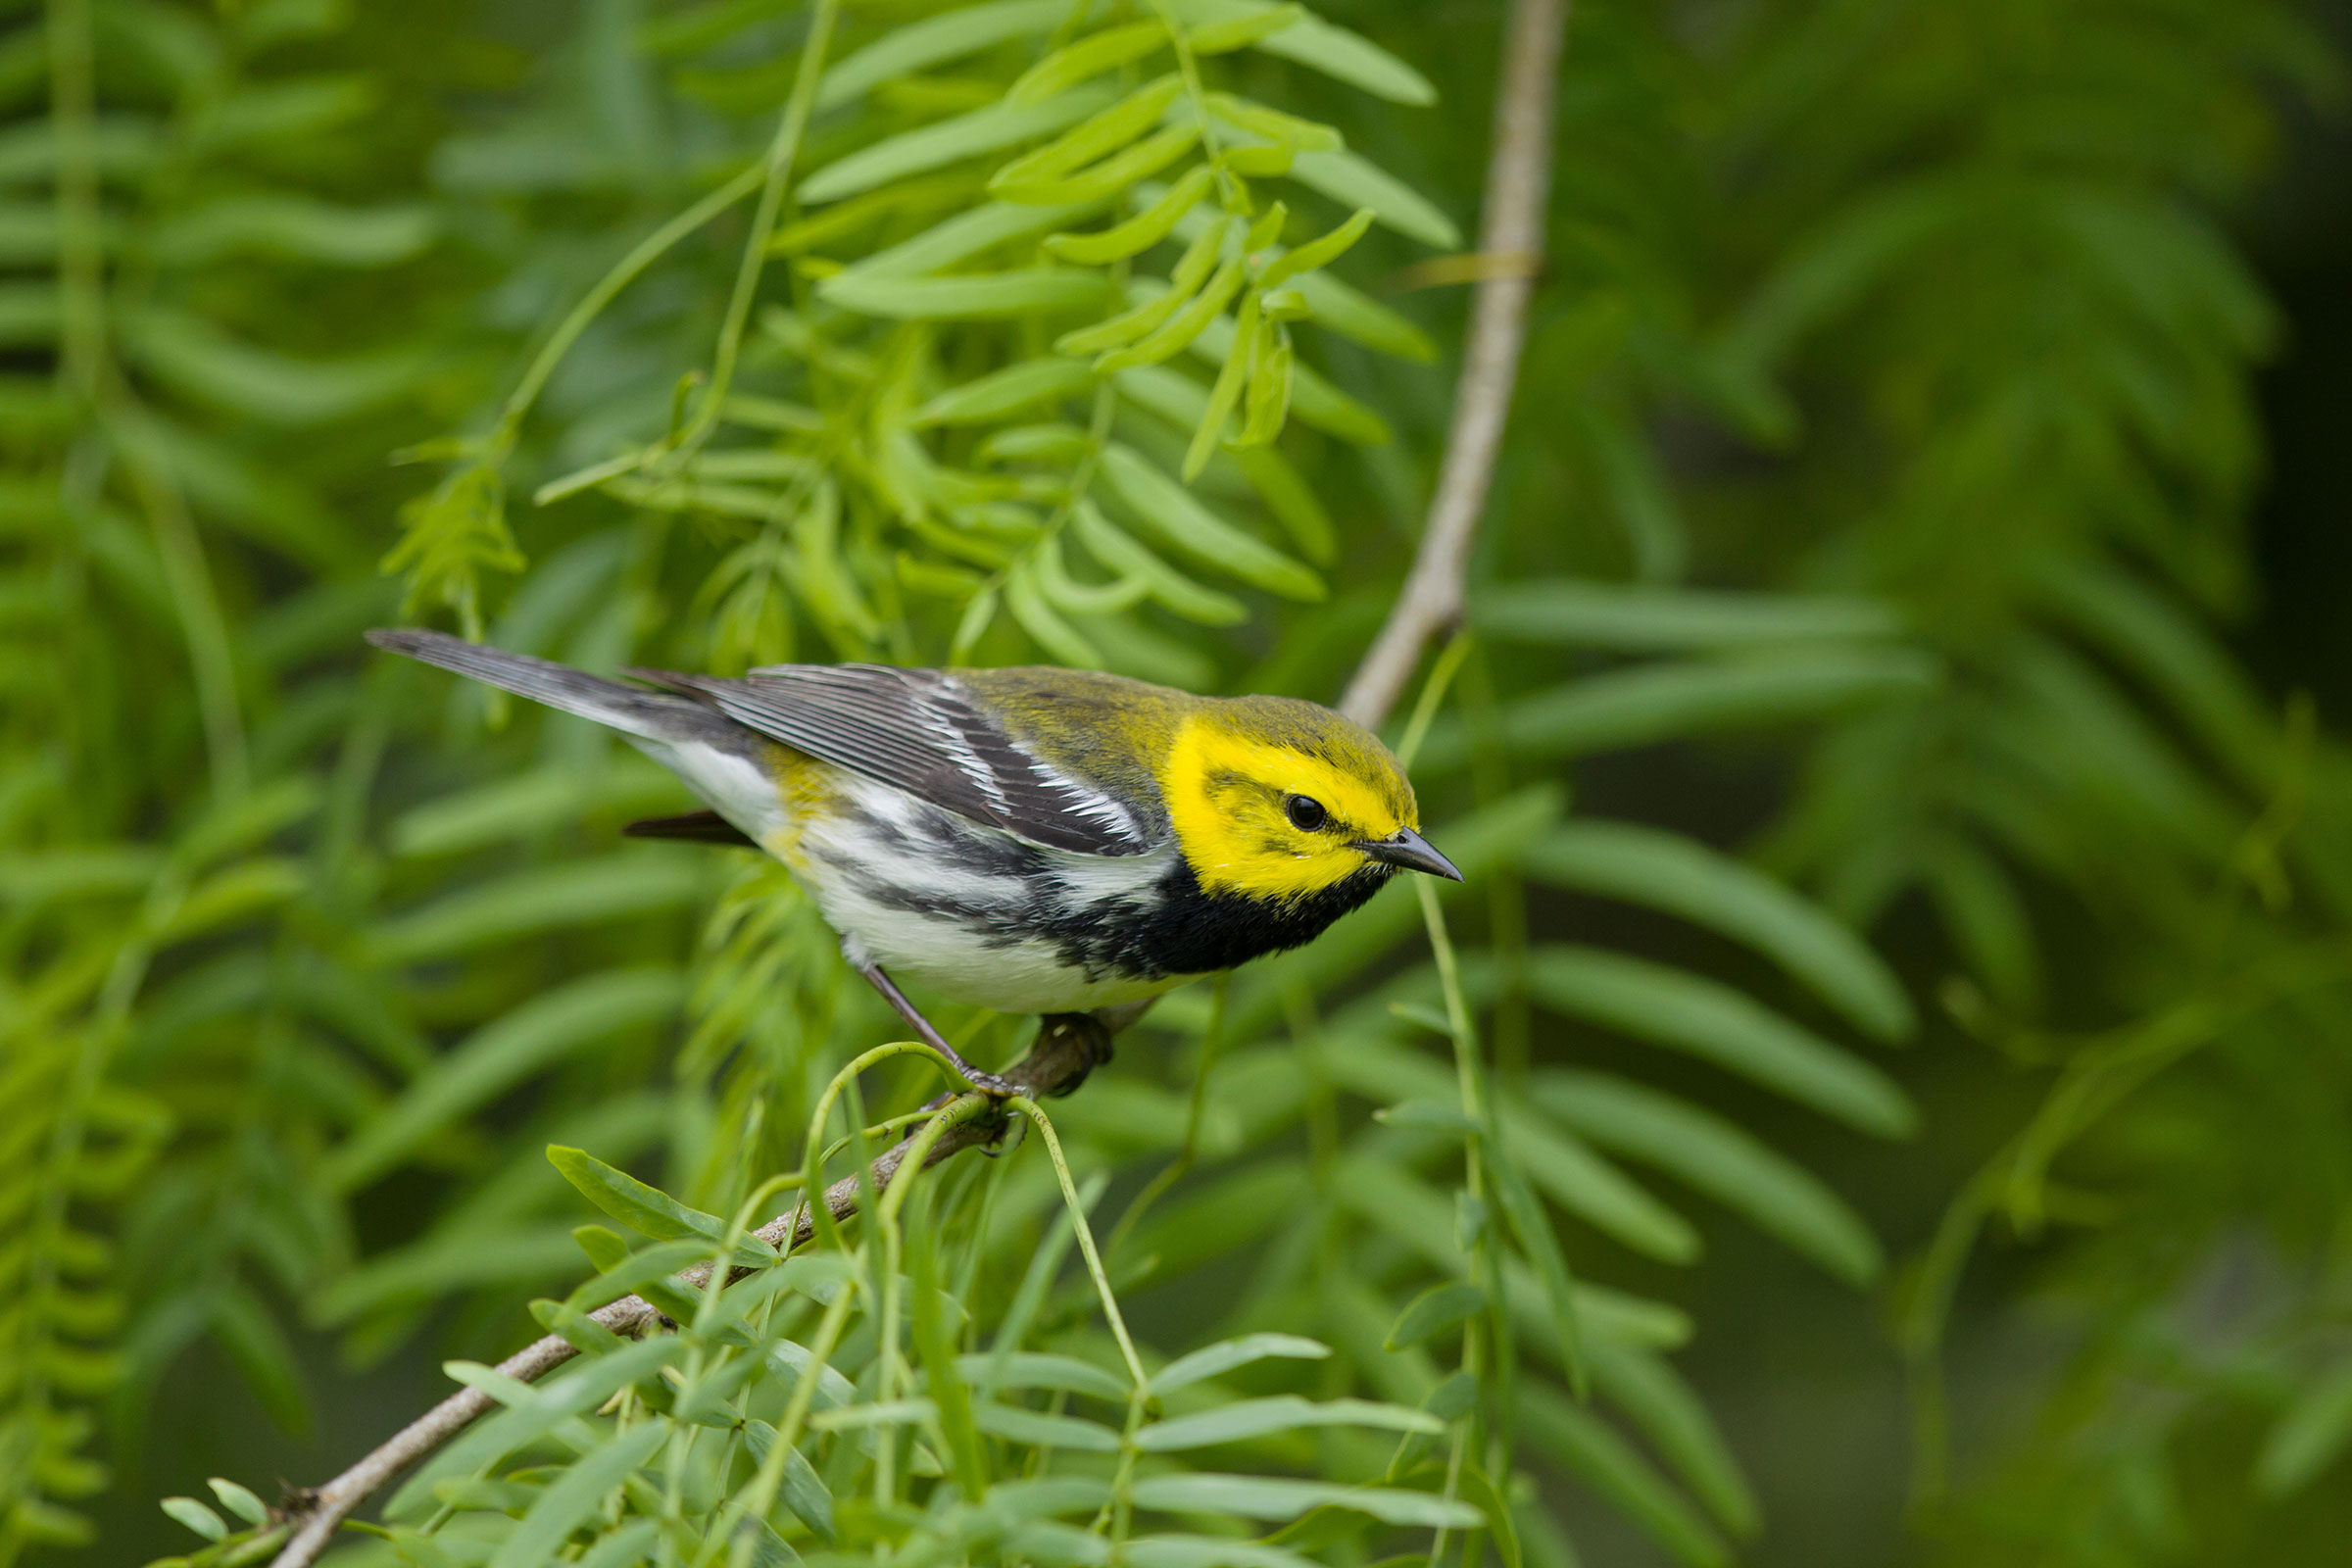 Black-throated Green Warbler. Bill Coster/Alamy